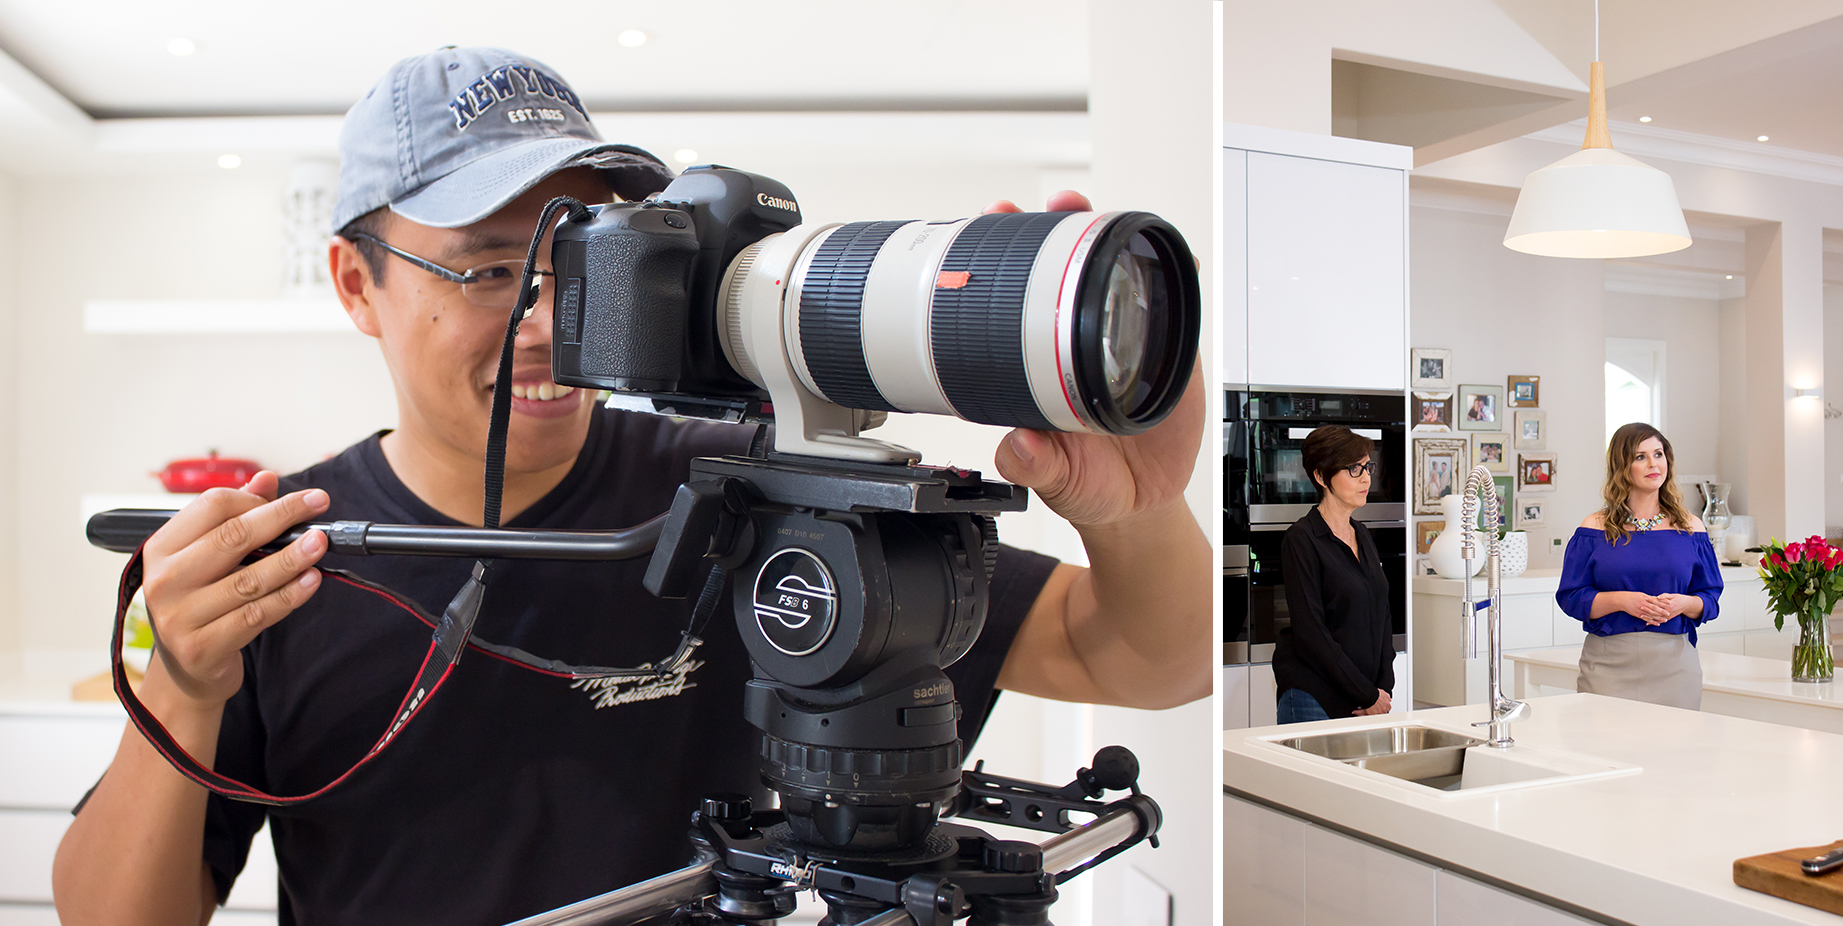 Our expert cameraman in action, filming Caesarstone presenter, Lisa Aspeling's interview with designer, Kim Hansen.